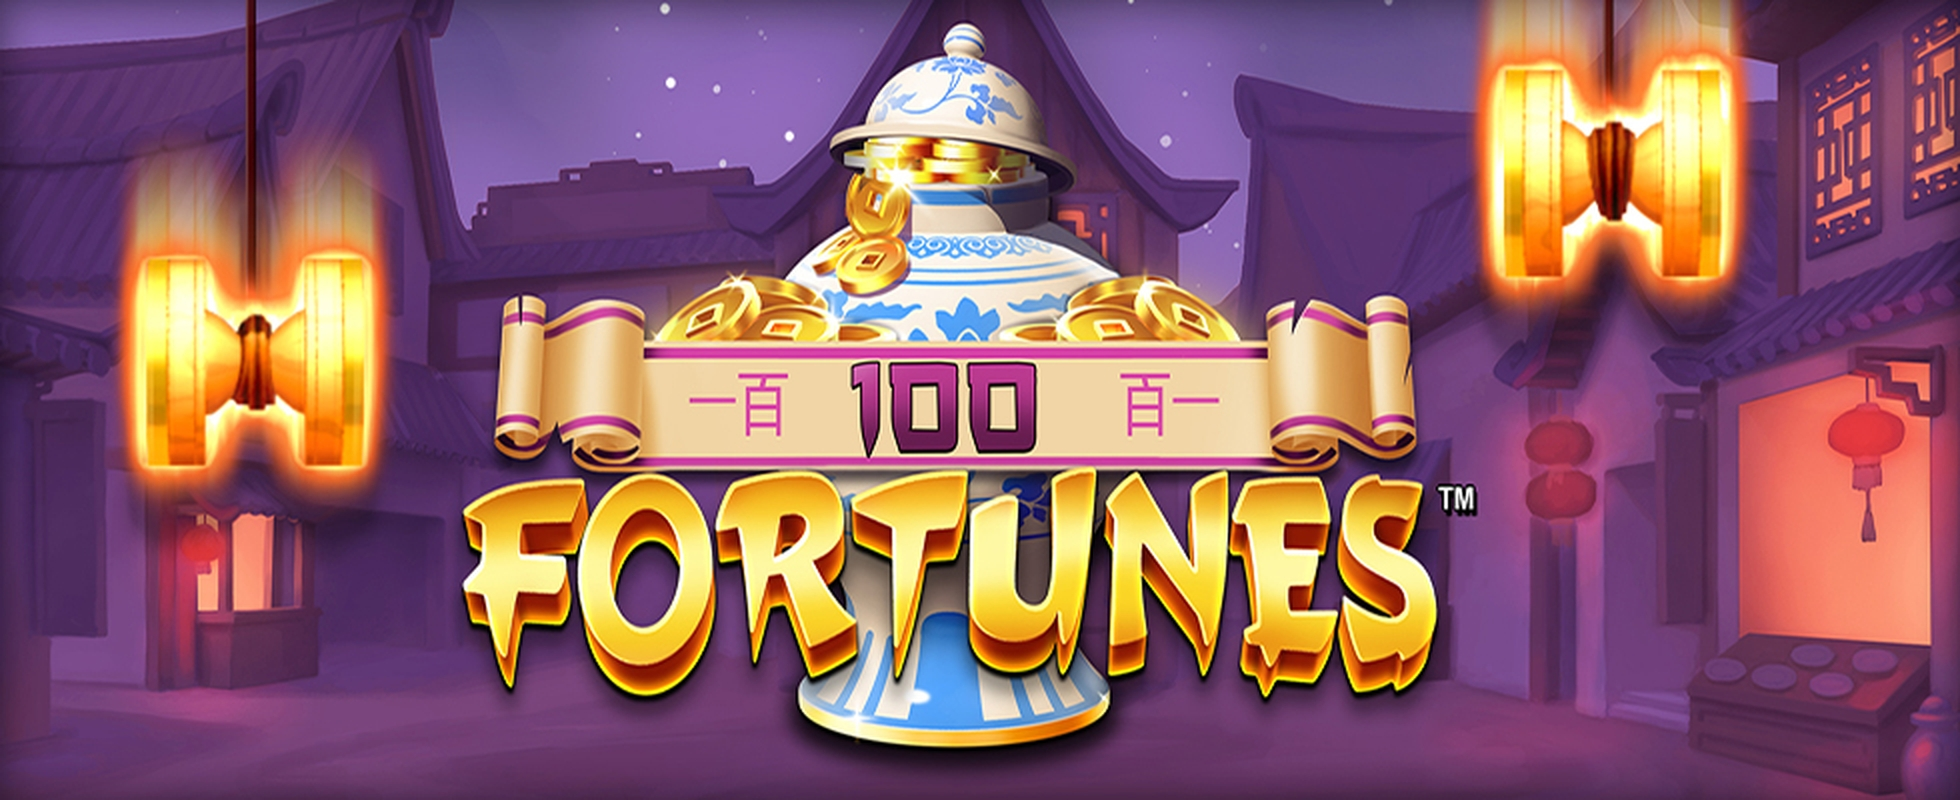 The 100 Fortunes Online Slot Demo Game by Northern Lights Gaming